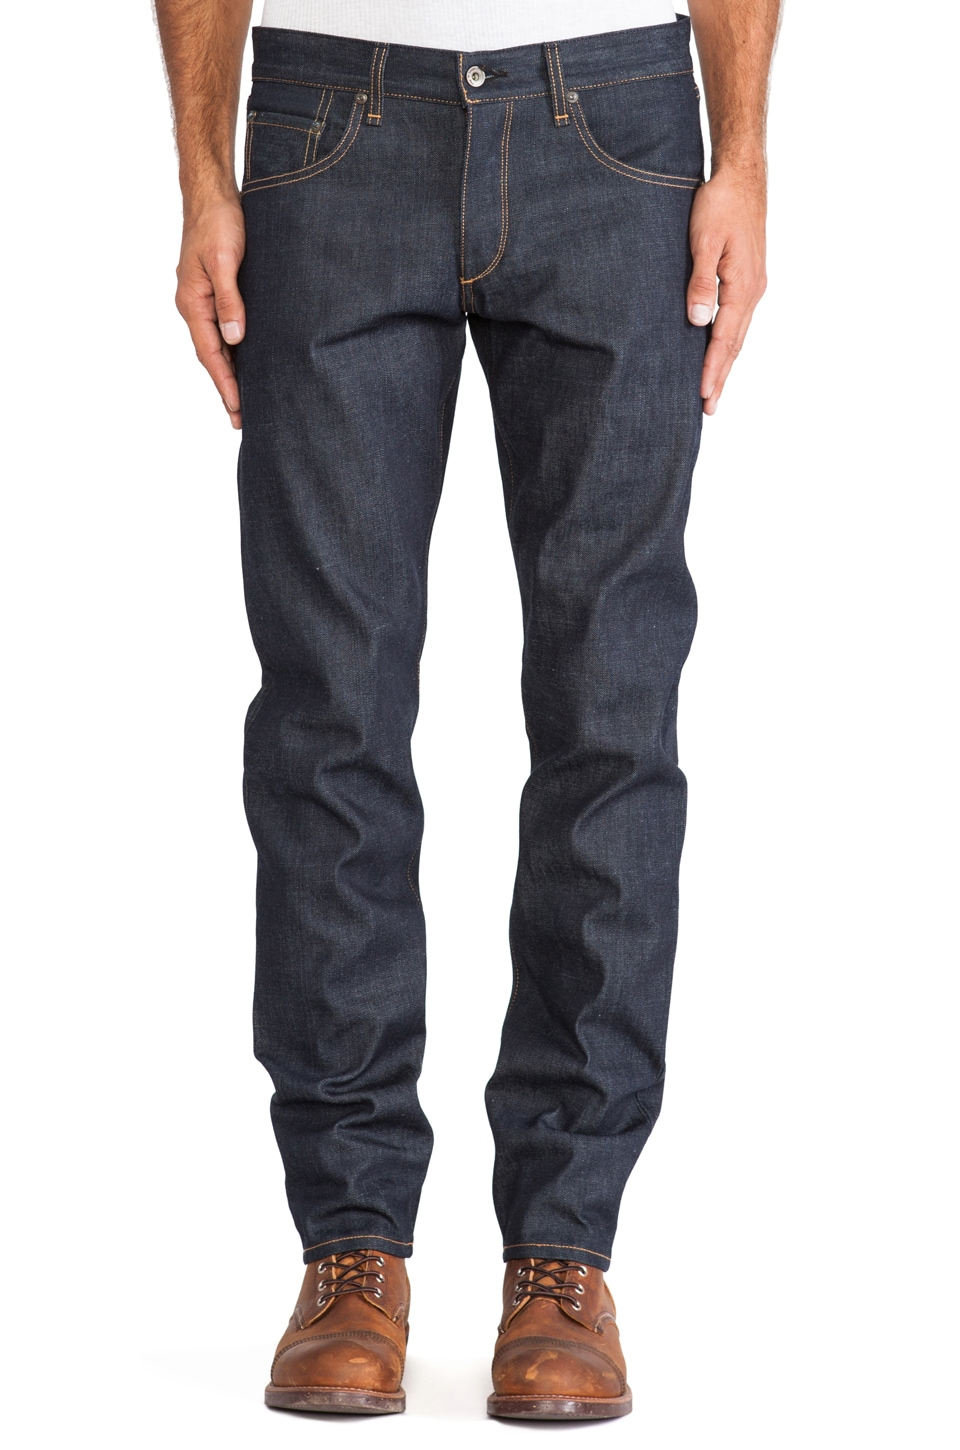 Rag & Bone Fit 2 Slim Jeans in Raw